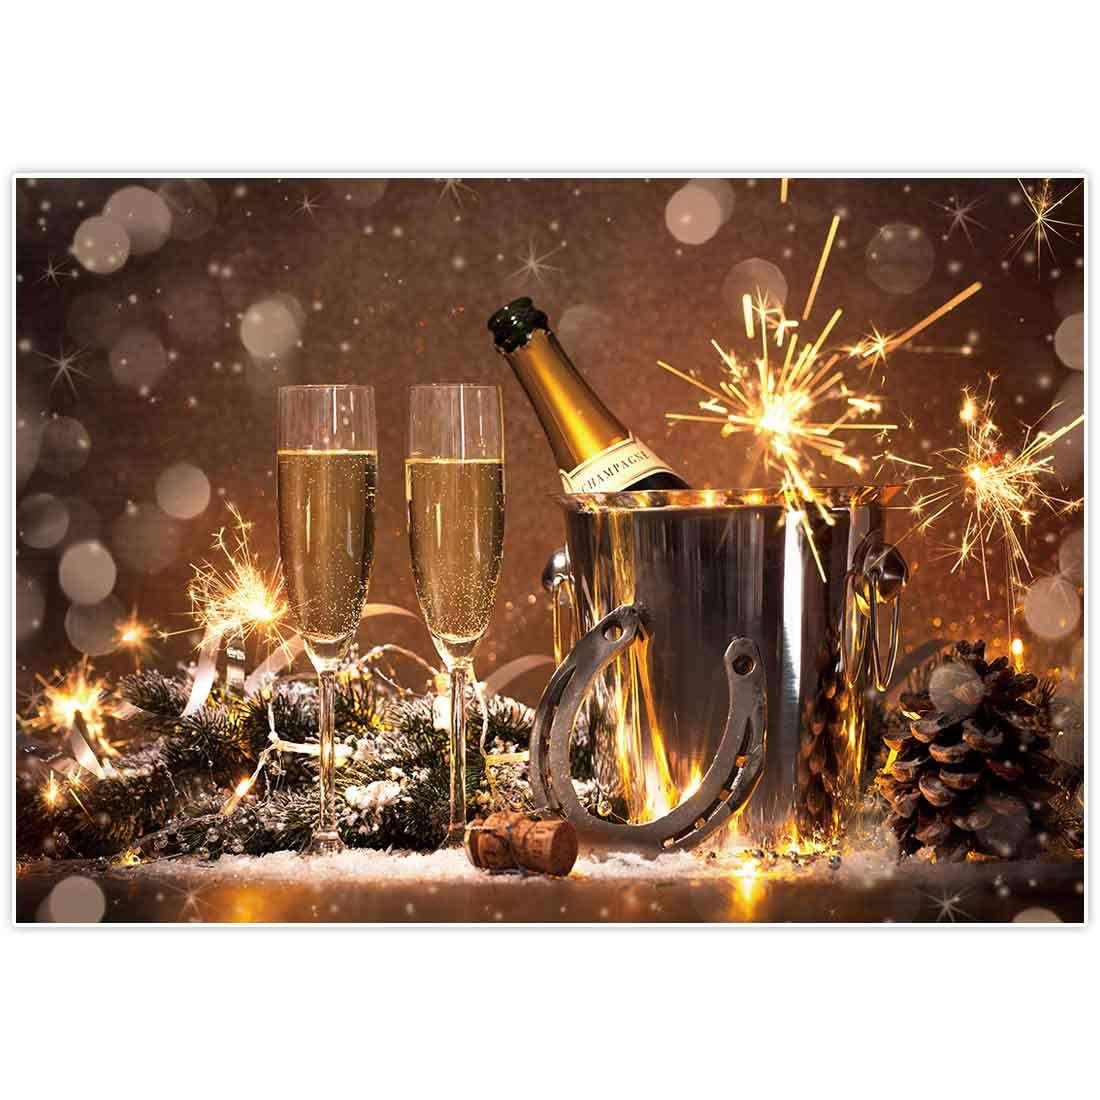 Allenjoy 7x5ft New Year Party Backdrop NYE Supplies Bokeh Golden Glitter Annual Events Family Home Decorations Celebration Festival Photoshoot Props Photography Background Favors Photo Booth Banner